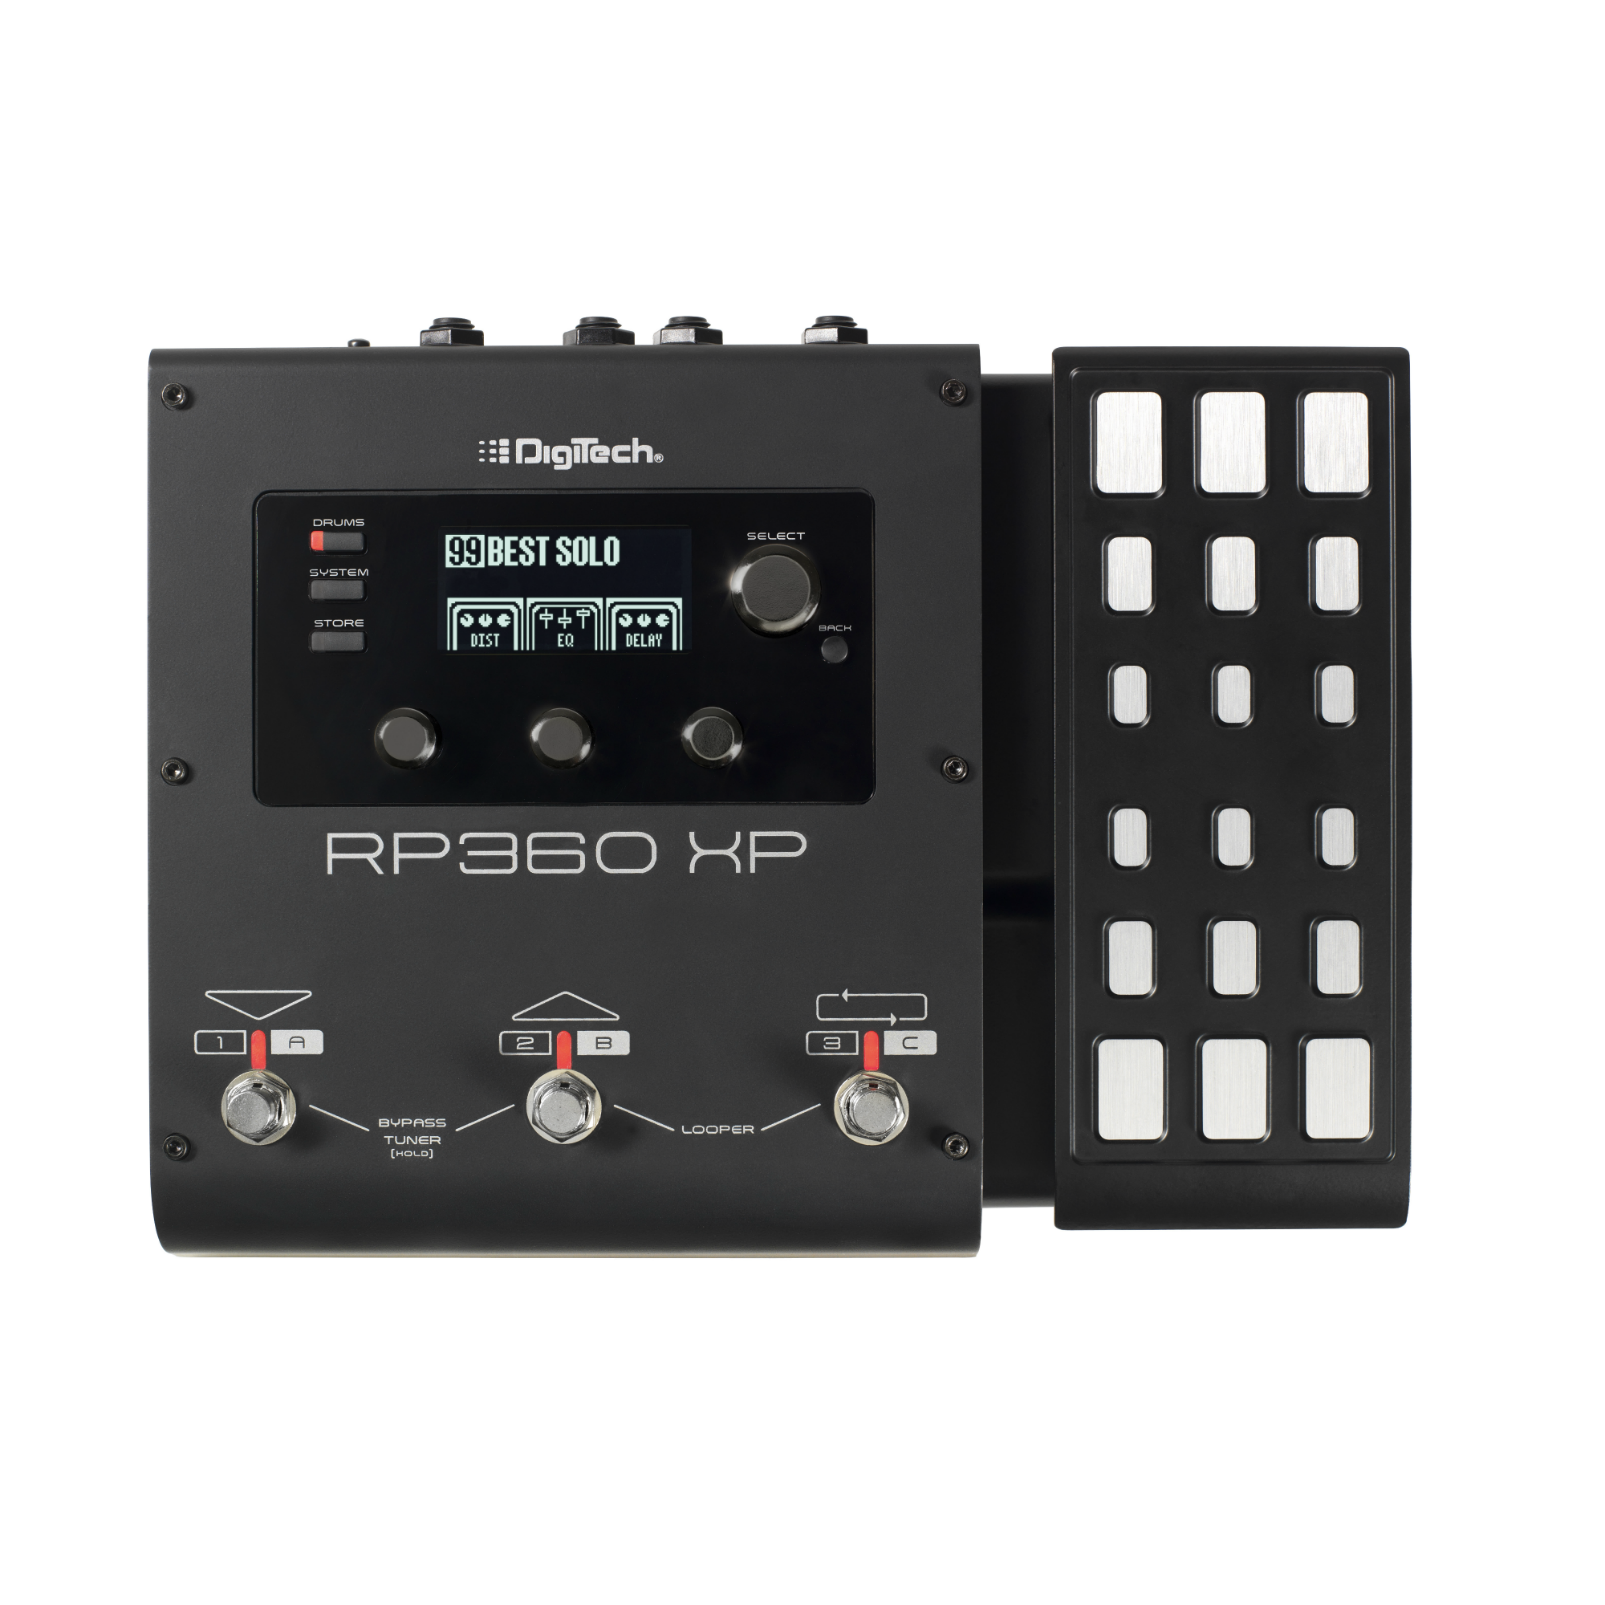 RP360 XP - Black - Guitar Multi-Effect Floor Processor with USB Streaming and Expression Pedal - Front